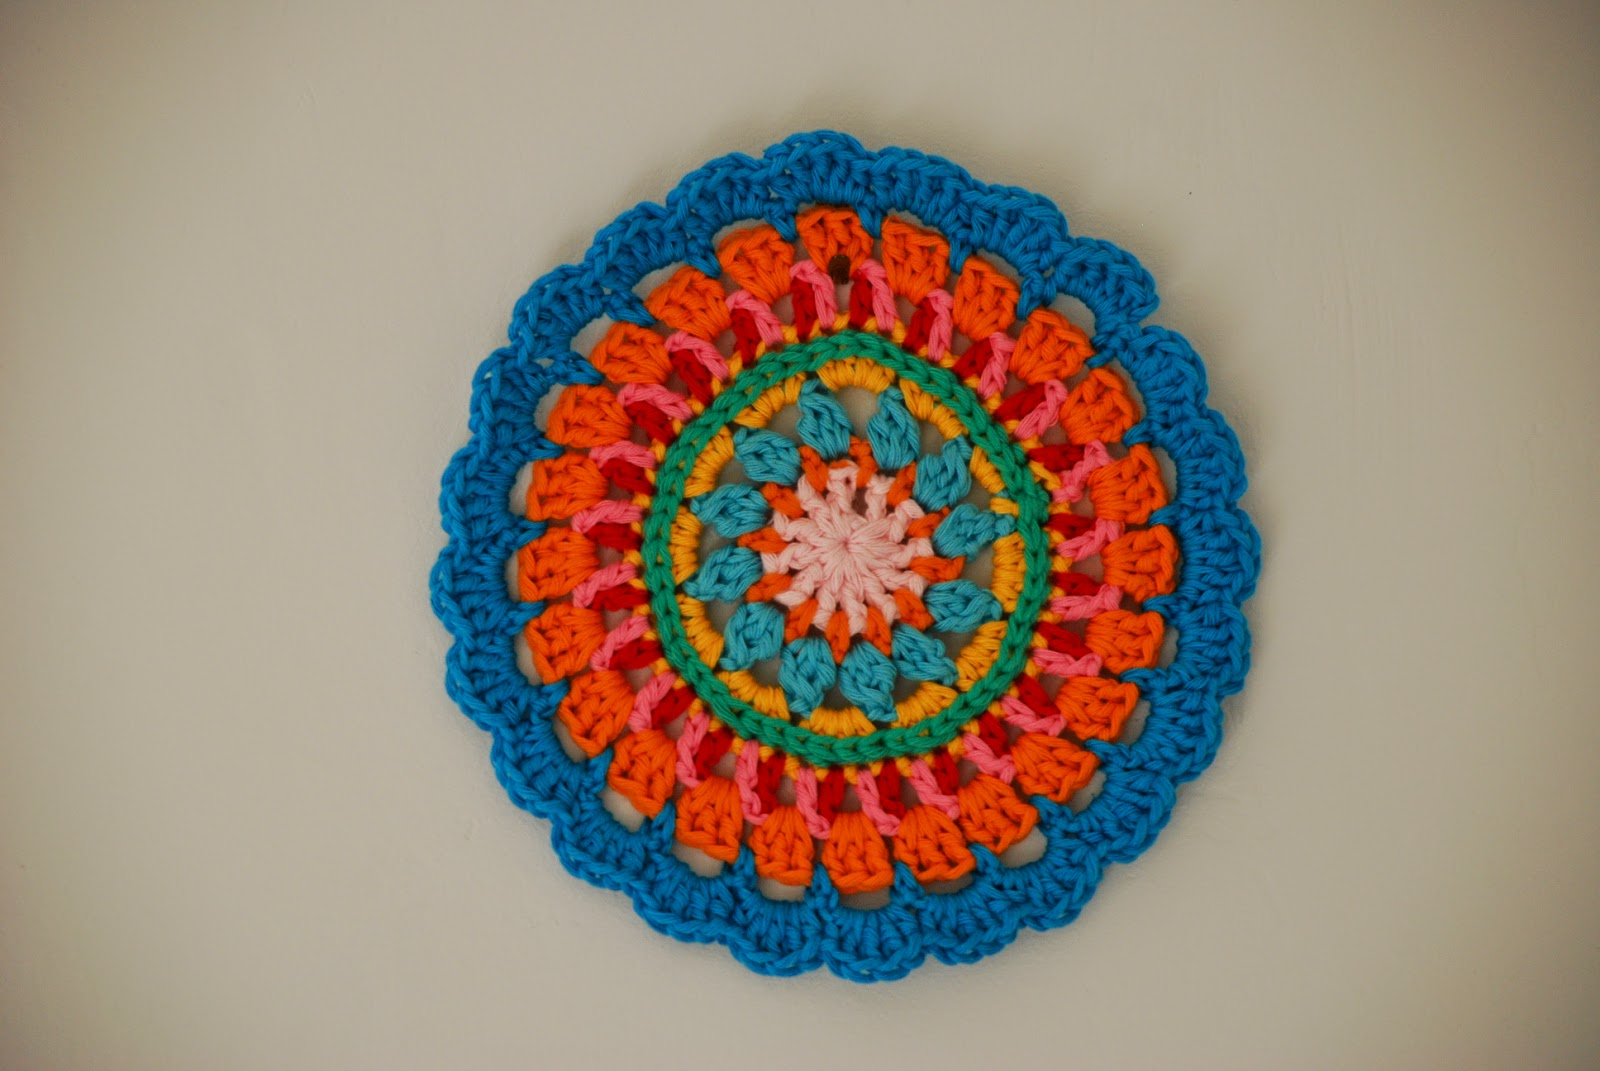 image of crochet mandala using rainbow colours